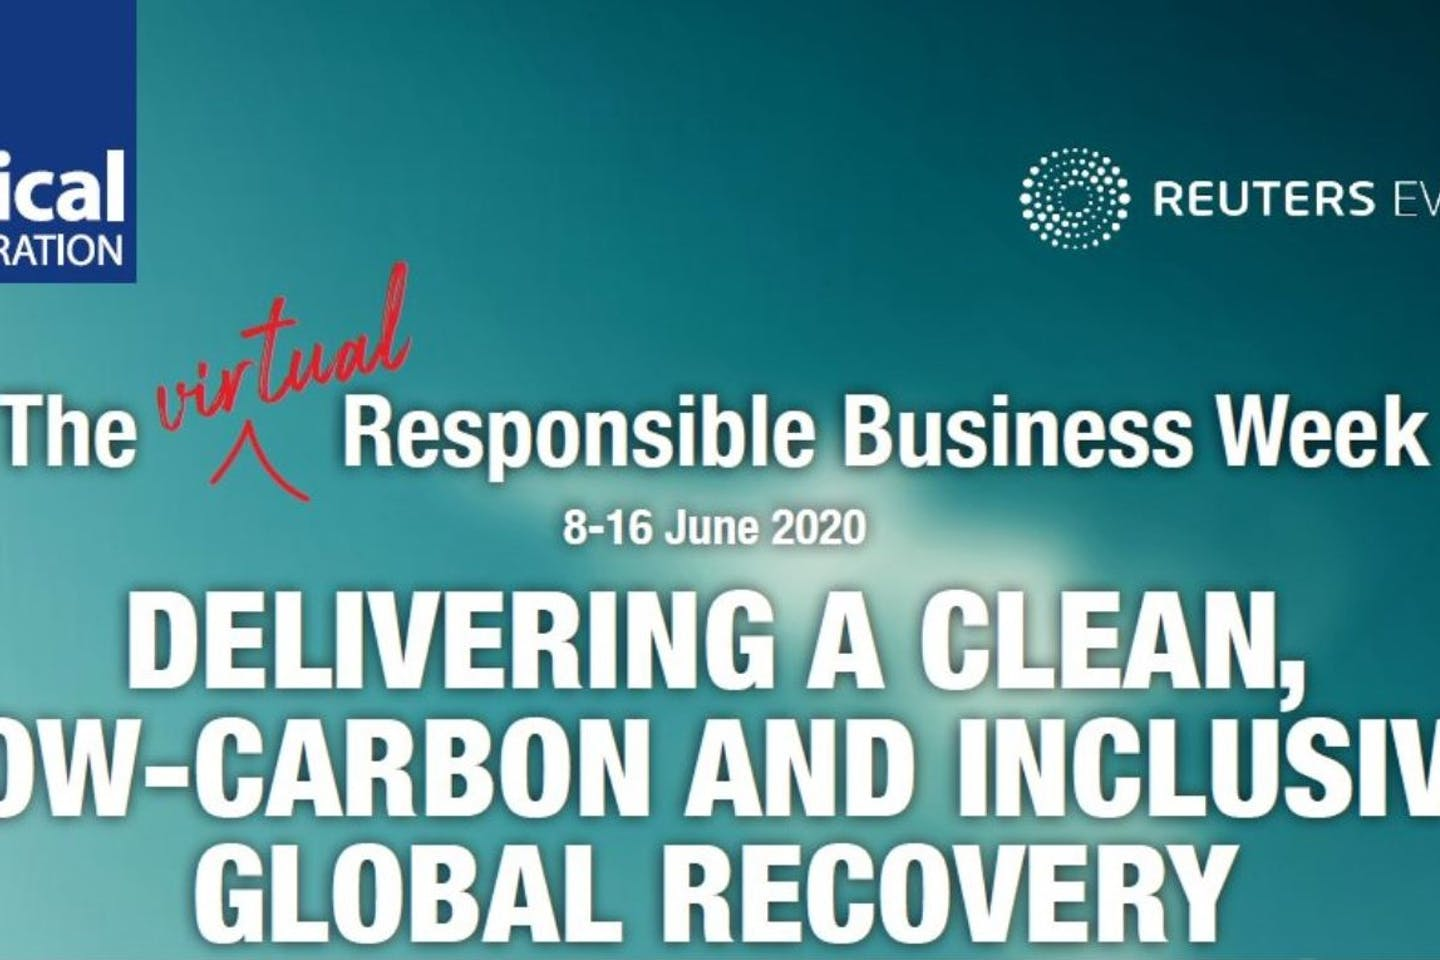 The Responsible Business Week [June 8-16] is now an online event and entirely free to attend.